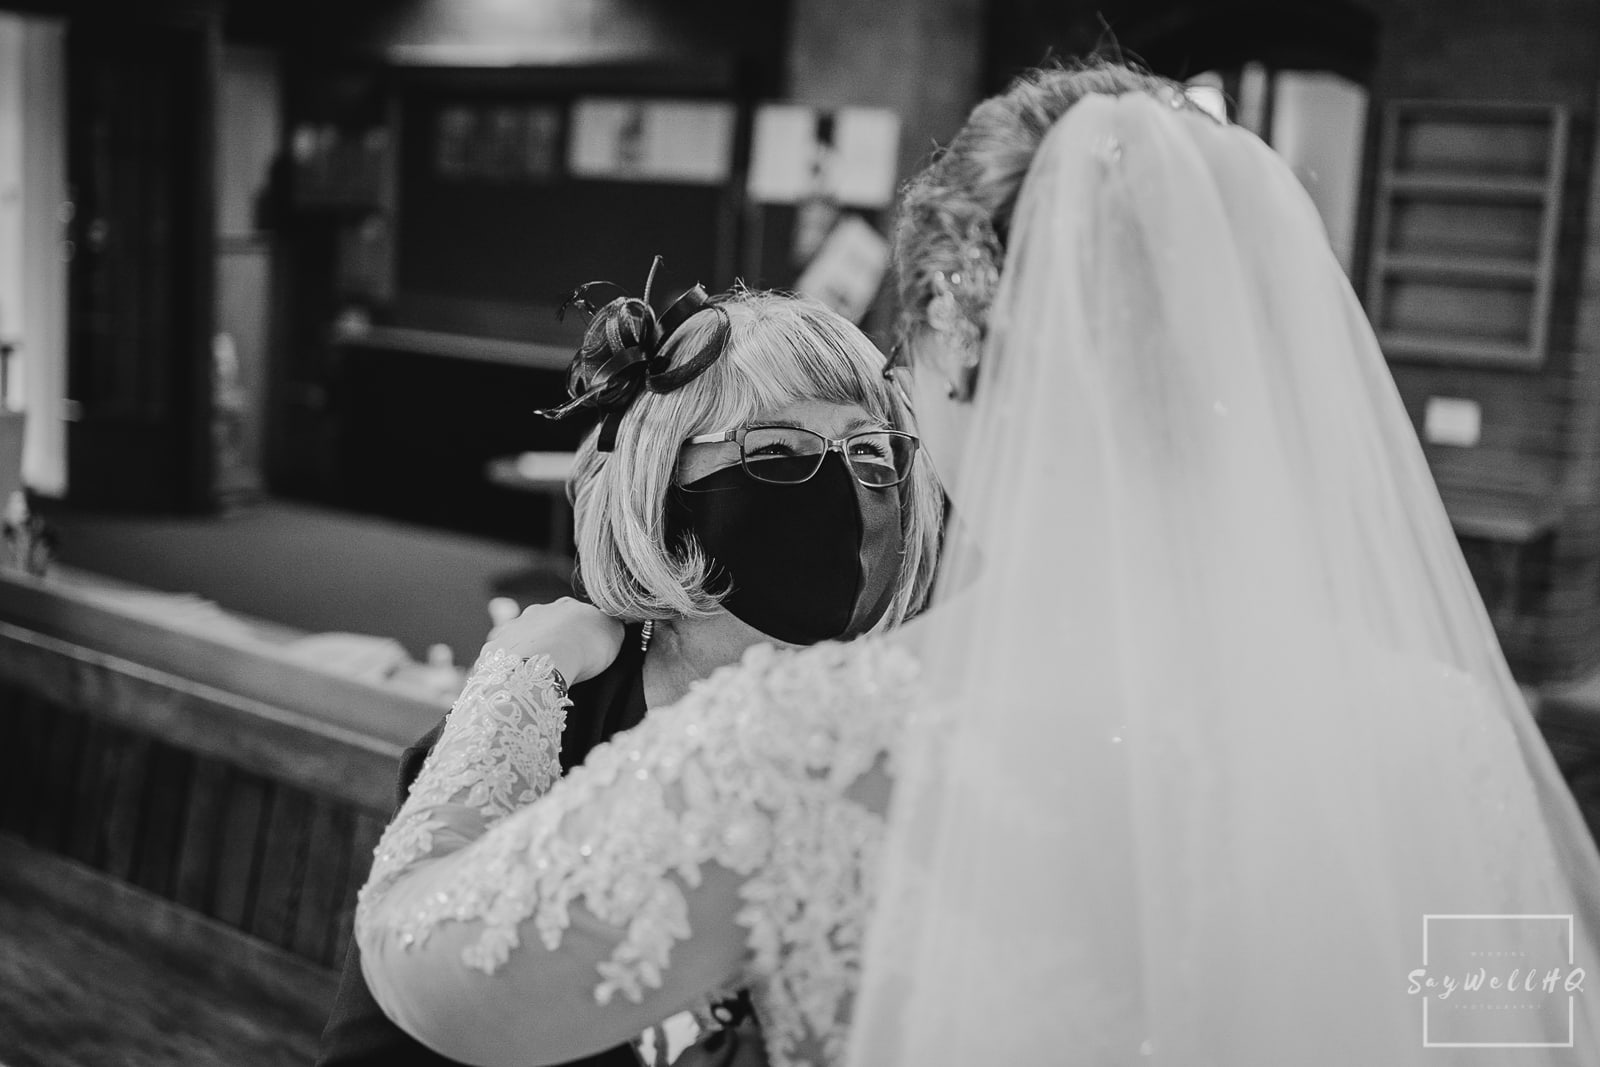 St Judes Church Mapperley Wedding Photography - Bride embracing in emotional hugs following the Church wedding ceremony